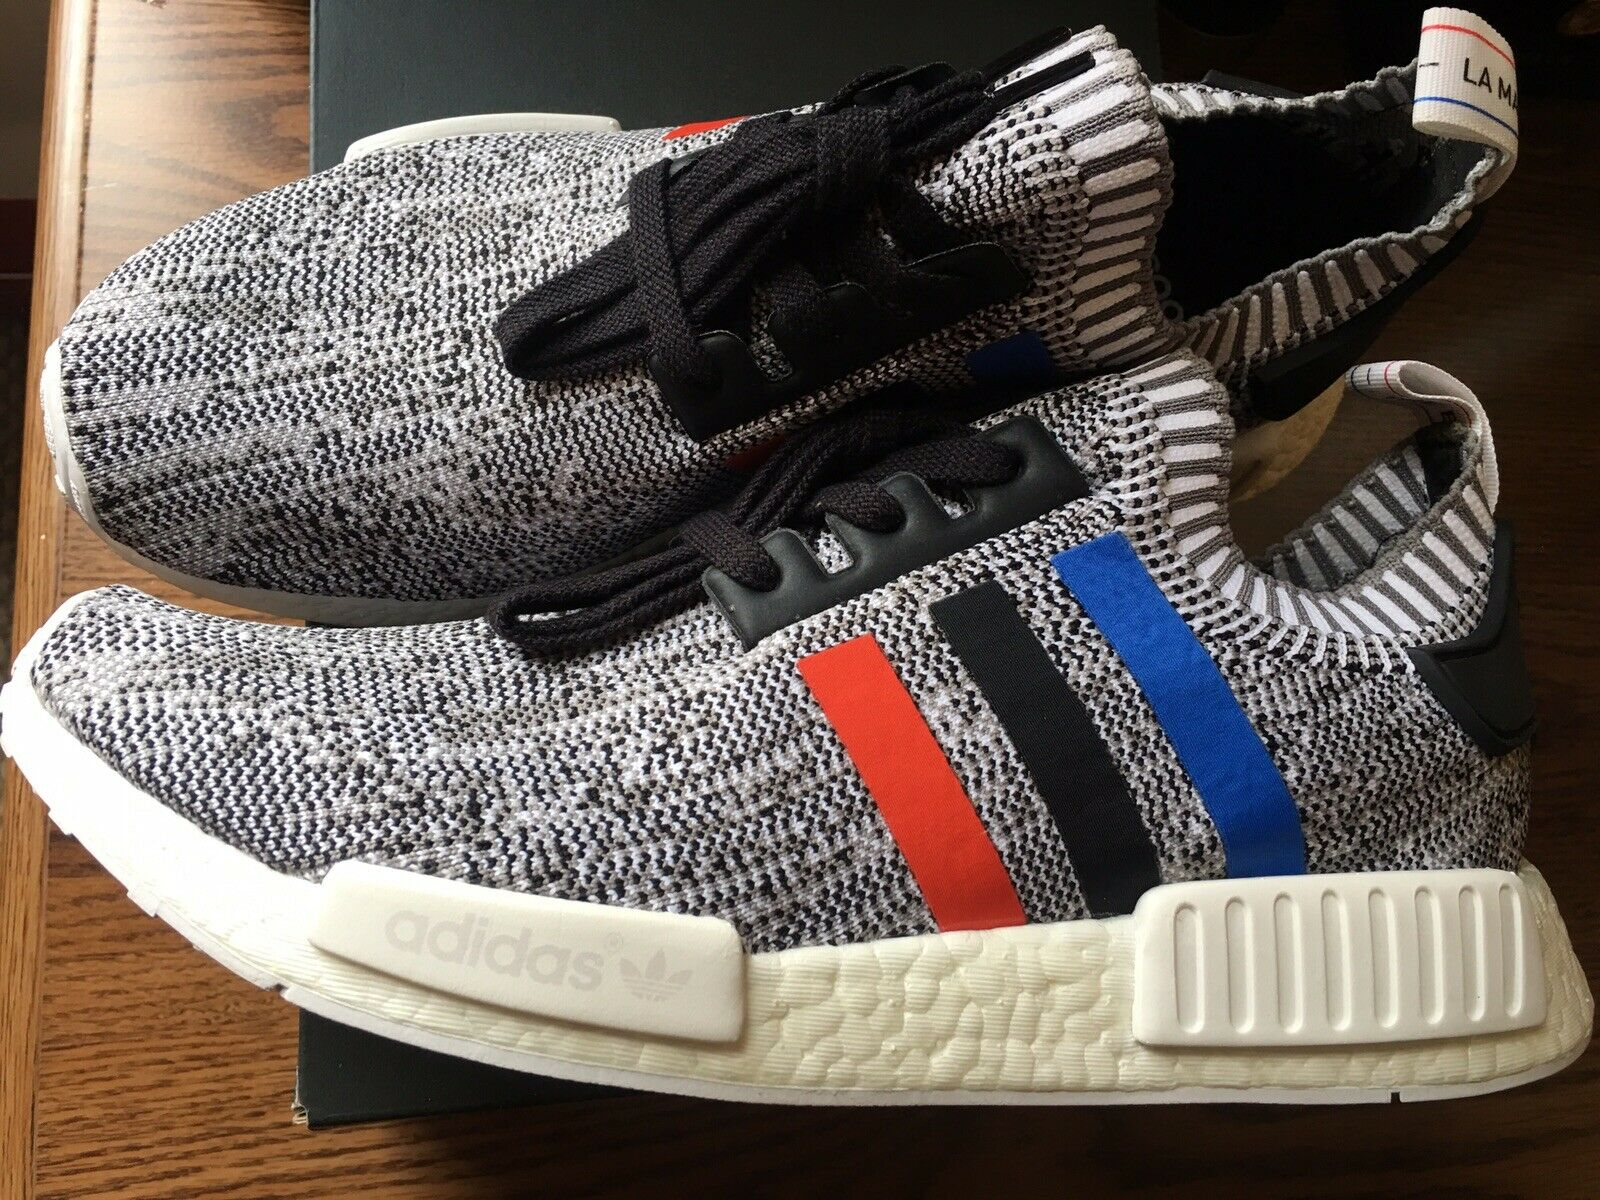 ADIDAS NMD_R1 PK SNEAKERS, SIZE 10.5 USA, Pre-owned